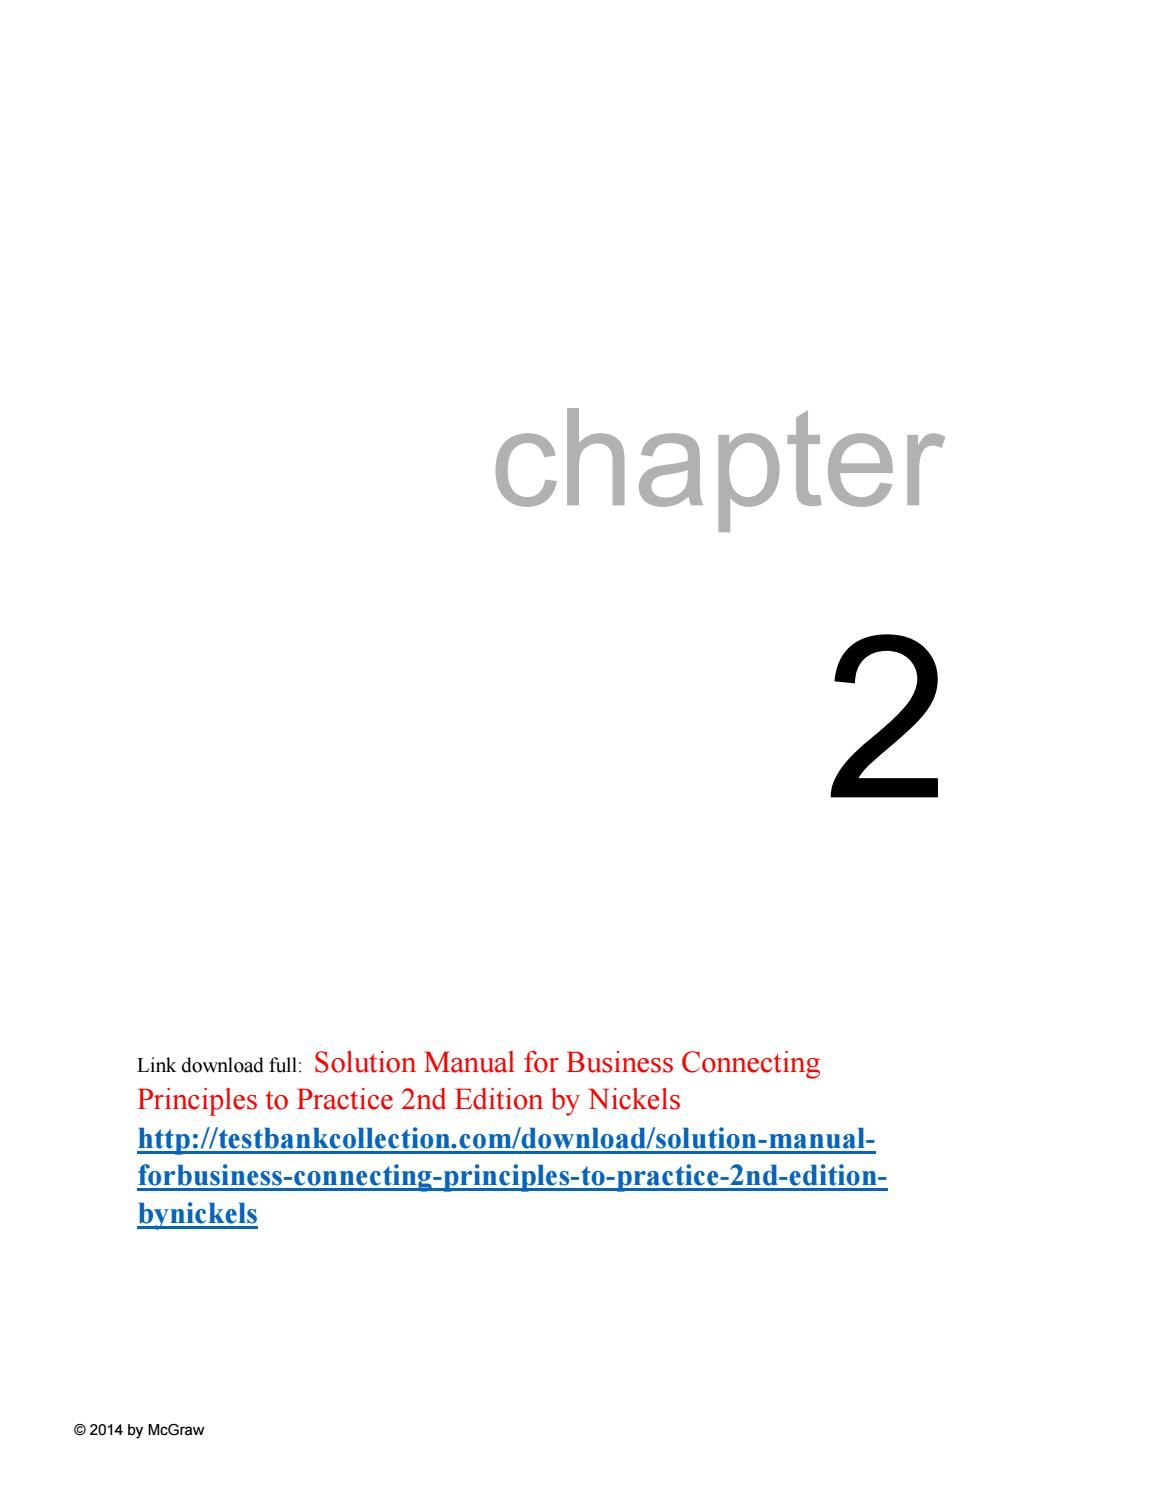 Solution manual for business connecting principles to practice 2nd edition  by nickels